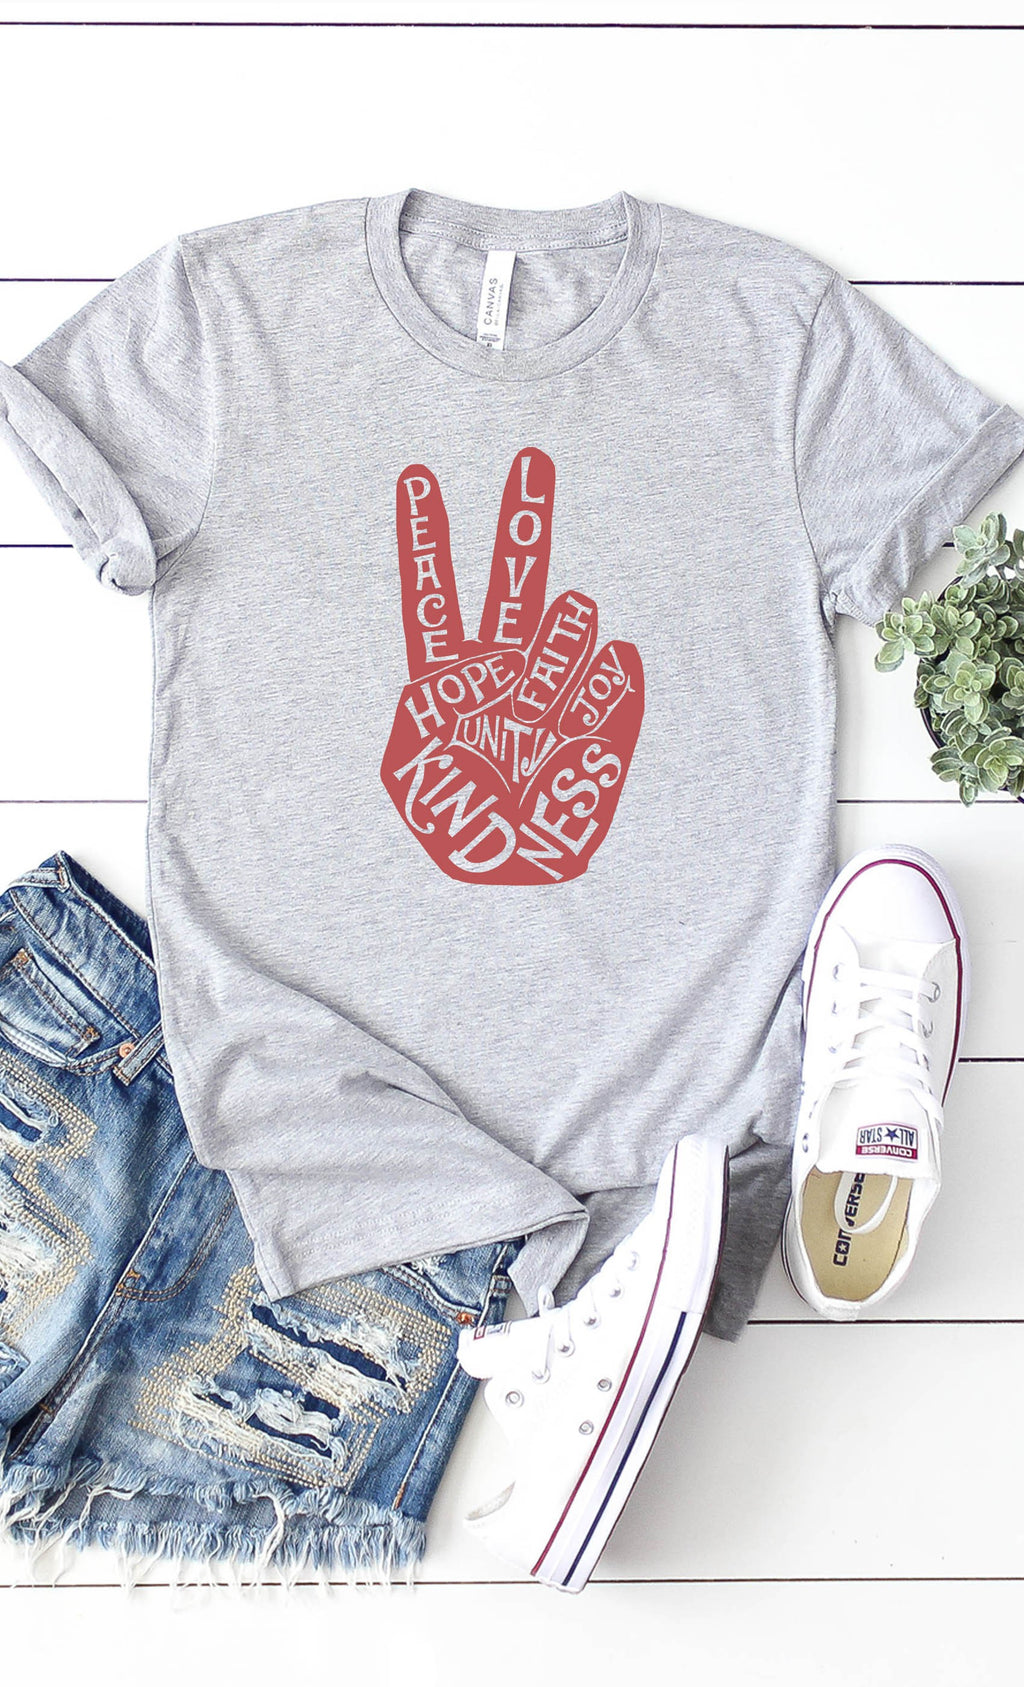 LAST CALL SIZE XL | Peace, Love & Kindness T-Shirt in Heather Grey